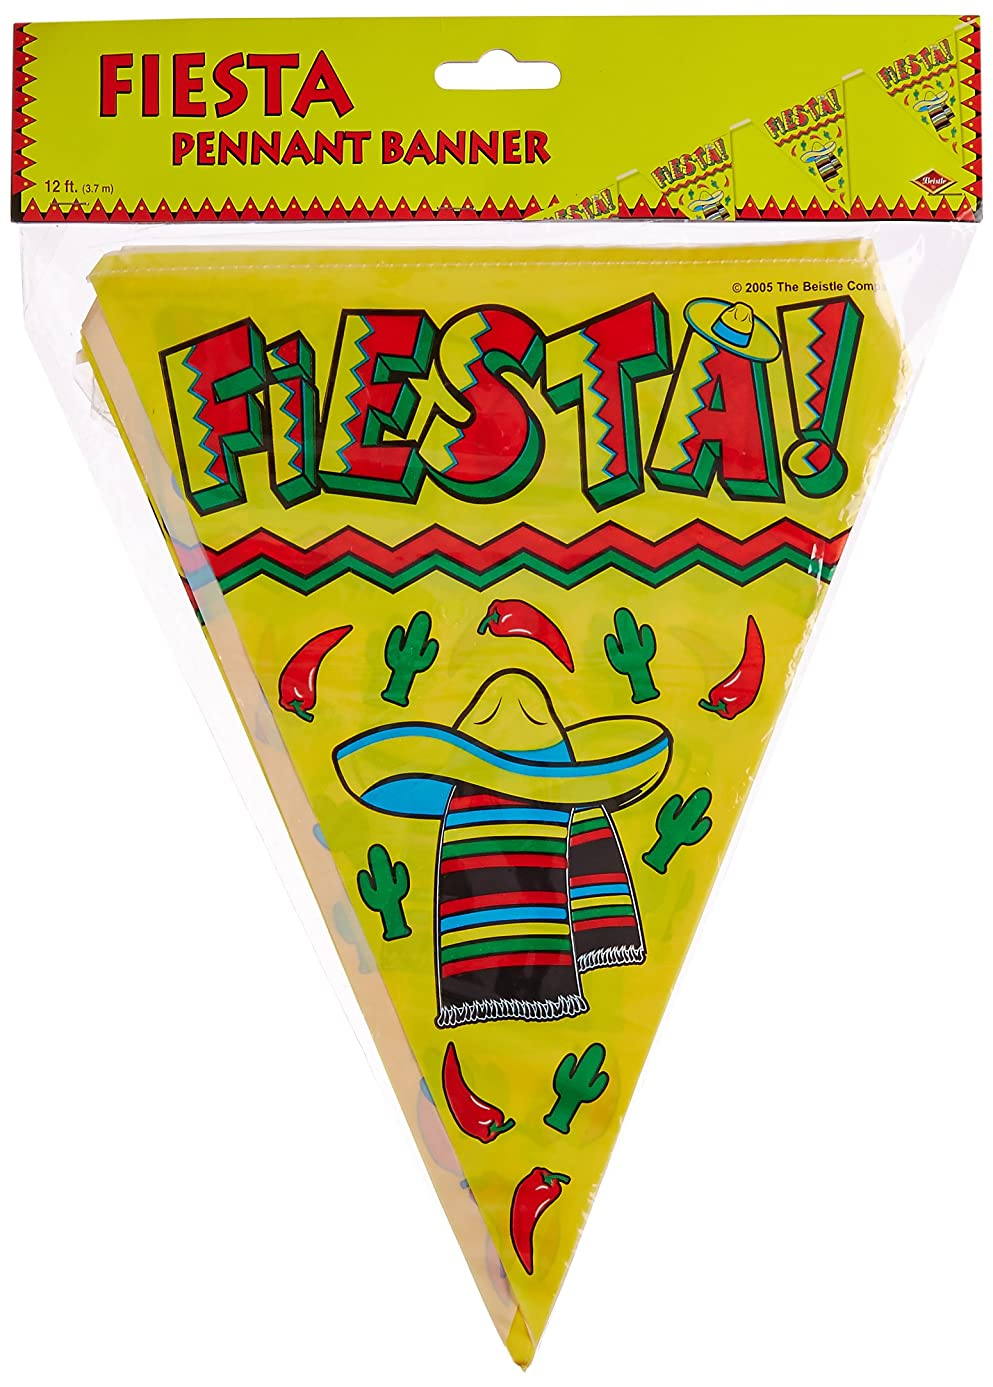 Fiesta Pennant Banner Party Accessory (1 count) (1/Pkg)